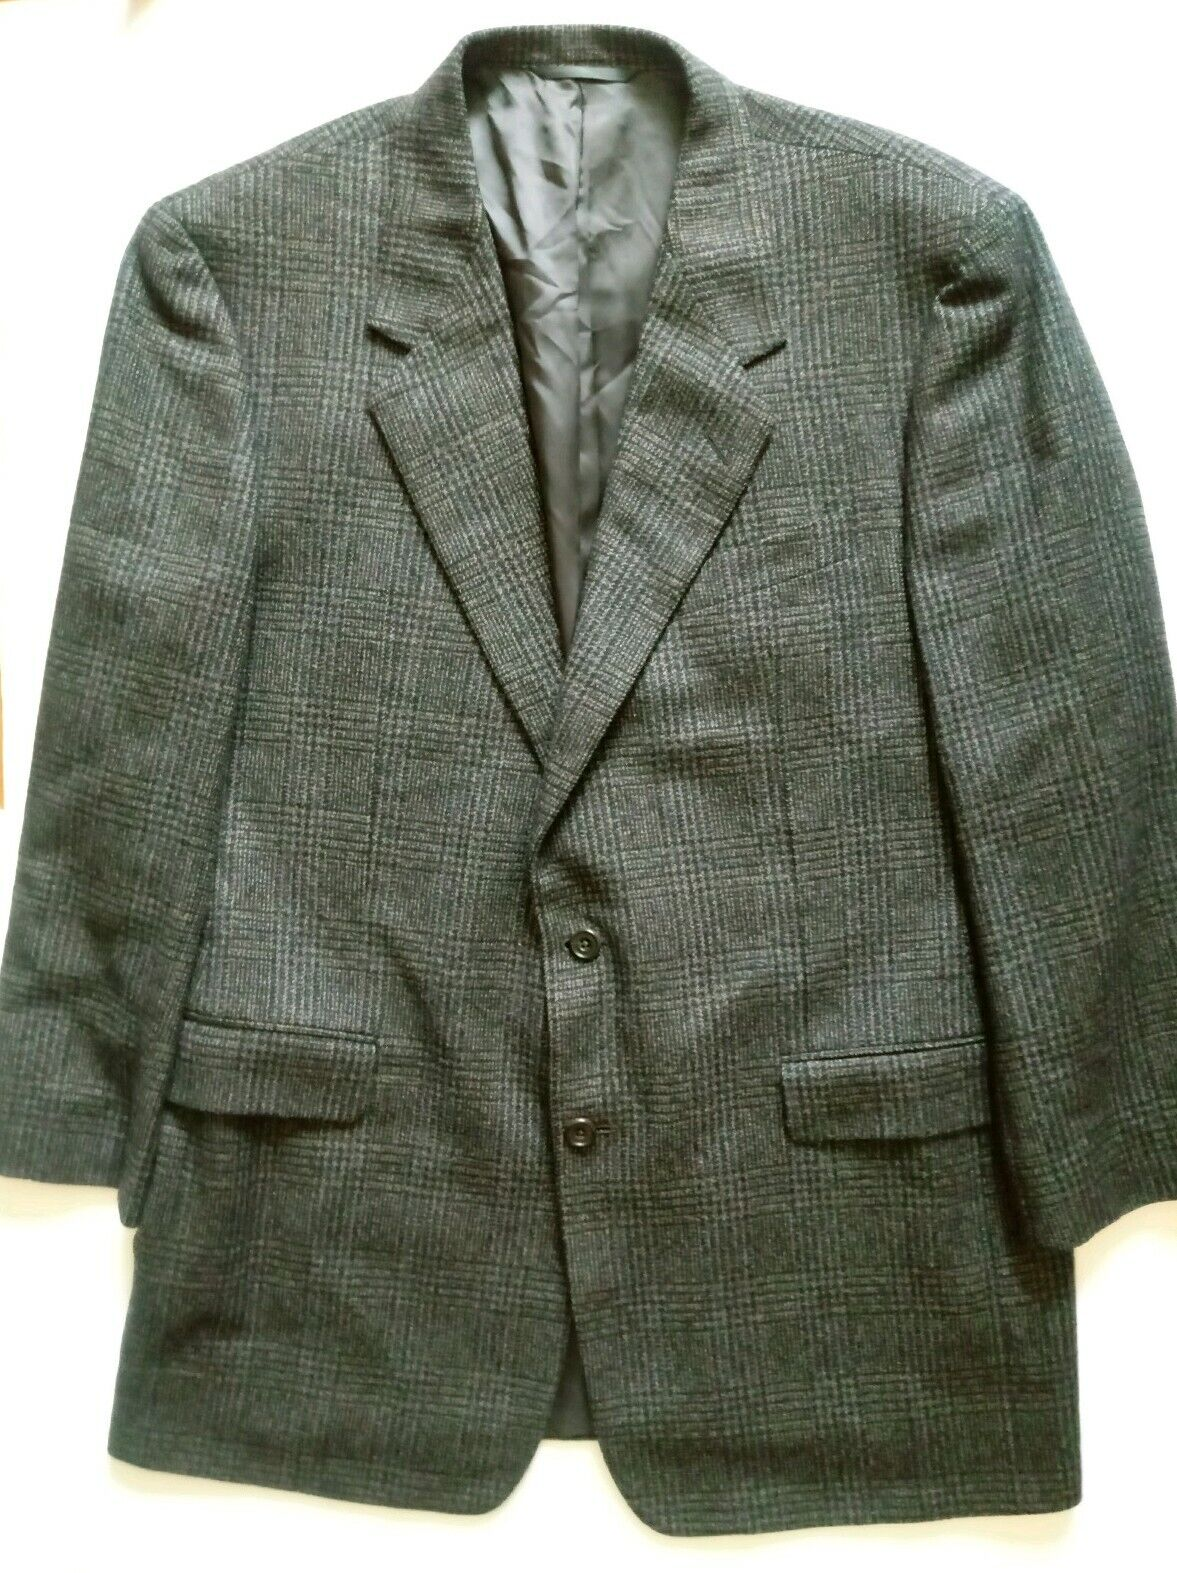 Hickey Freeman Cashmere Blend Diplomat 2 Button 44 Long Prince of Wales